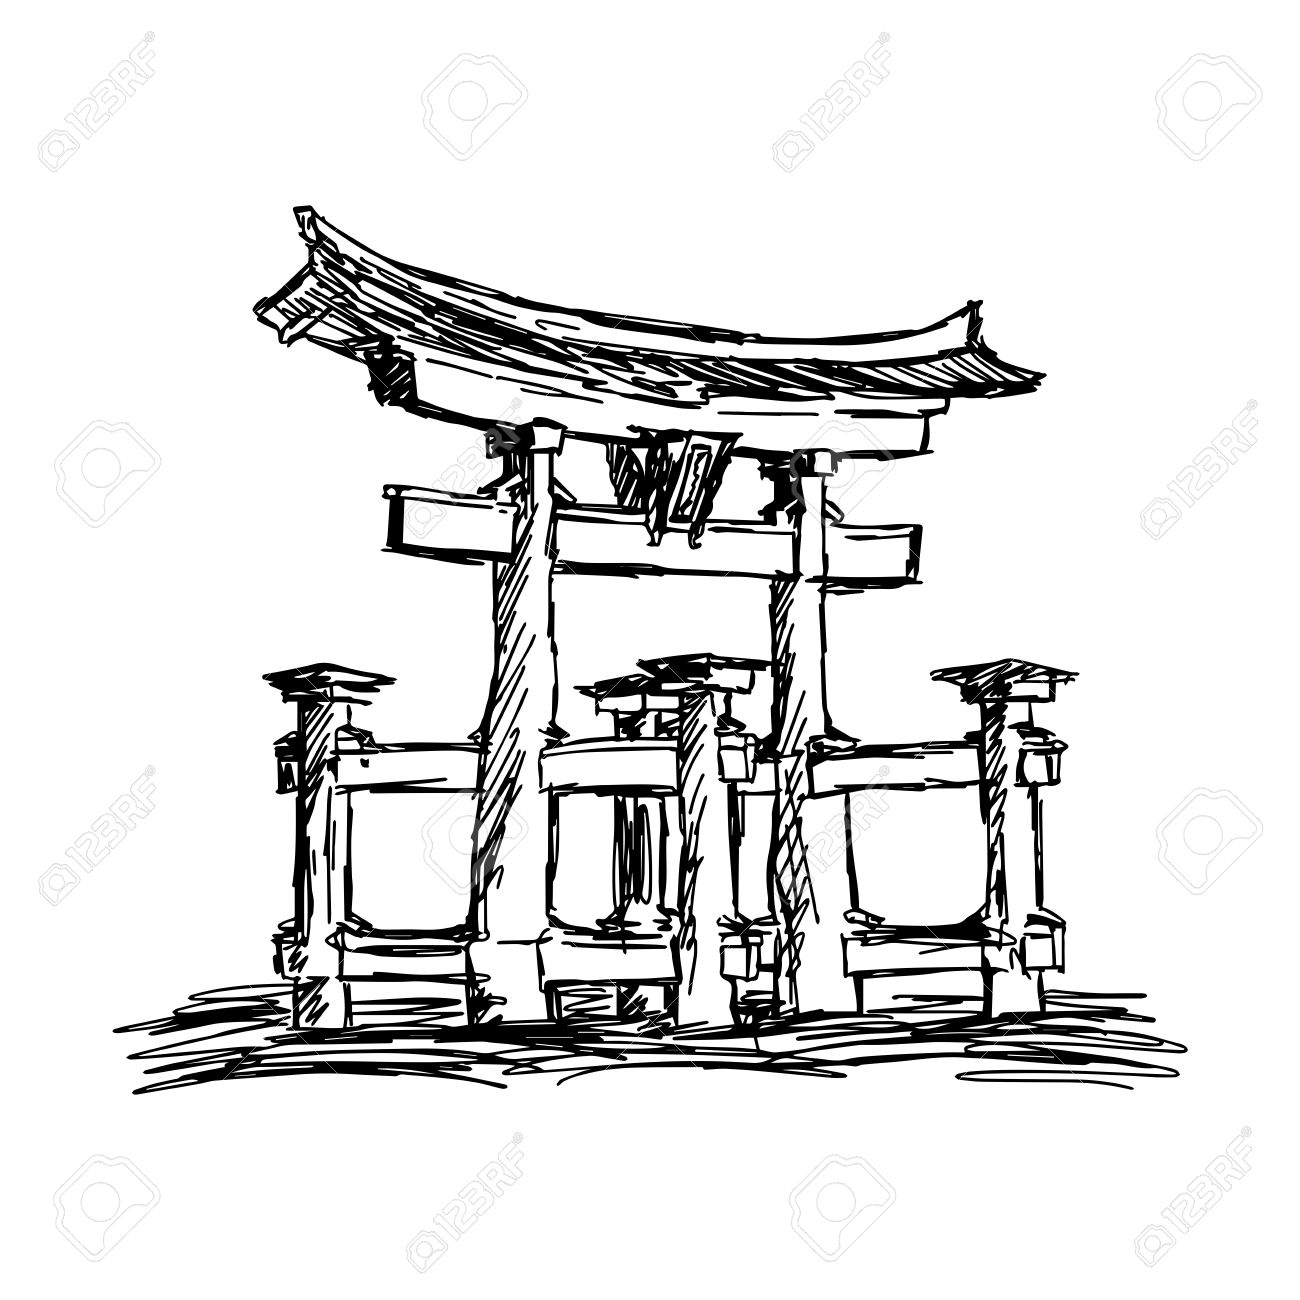 Illustration Vector Doodle Hand Drawn Of Sketch Itsukushima Shrine.